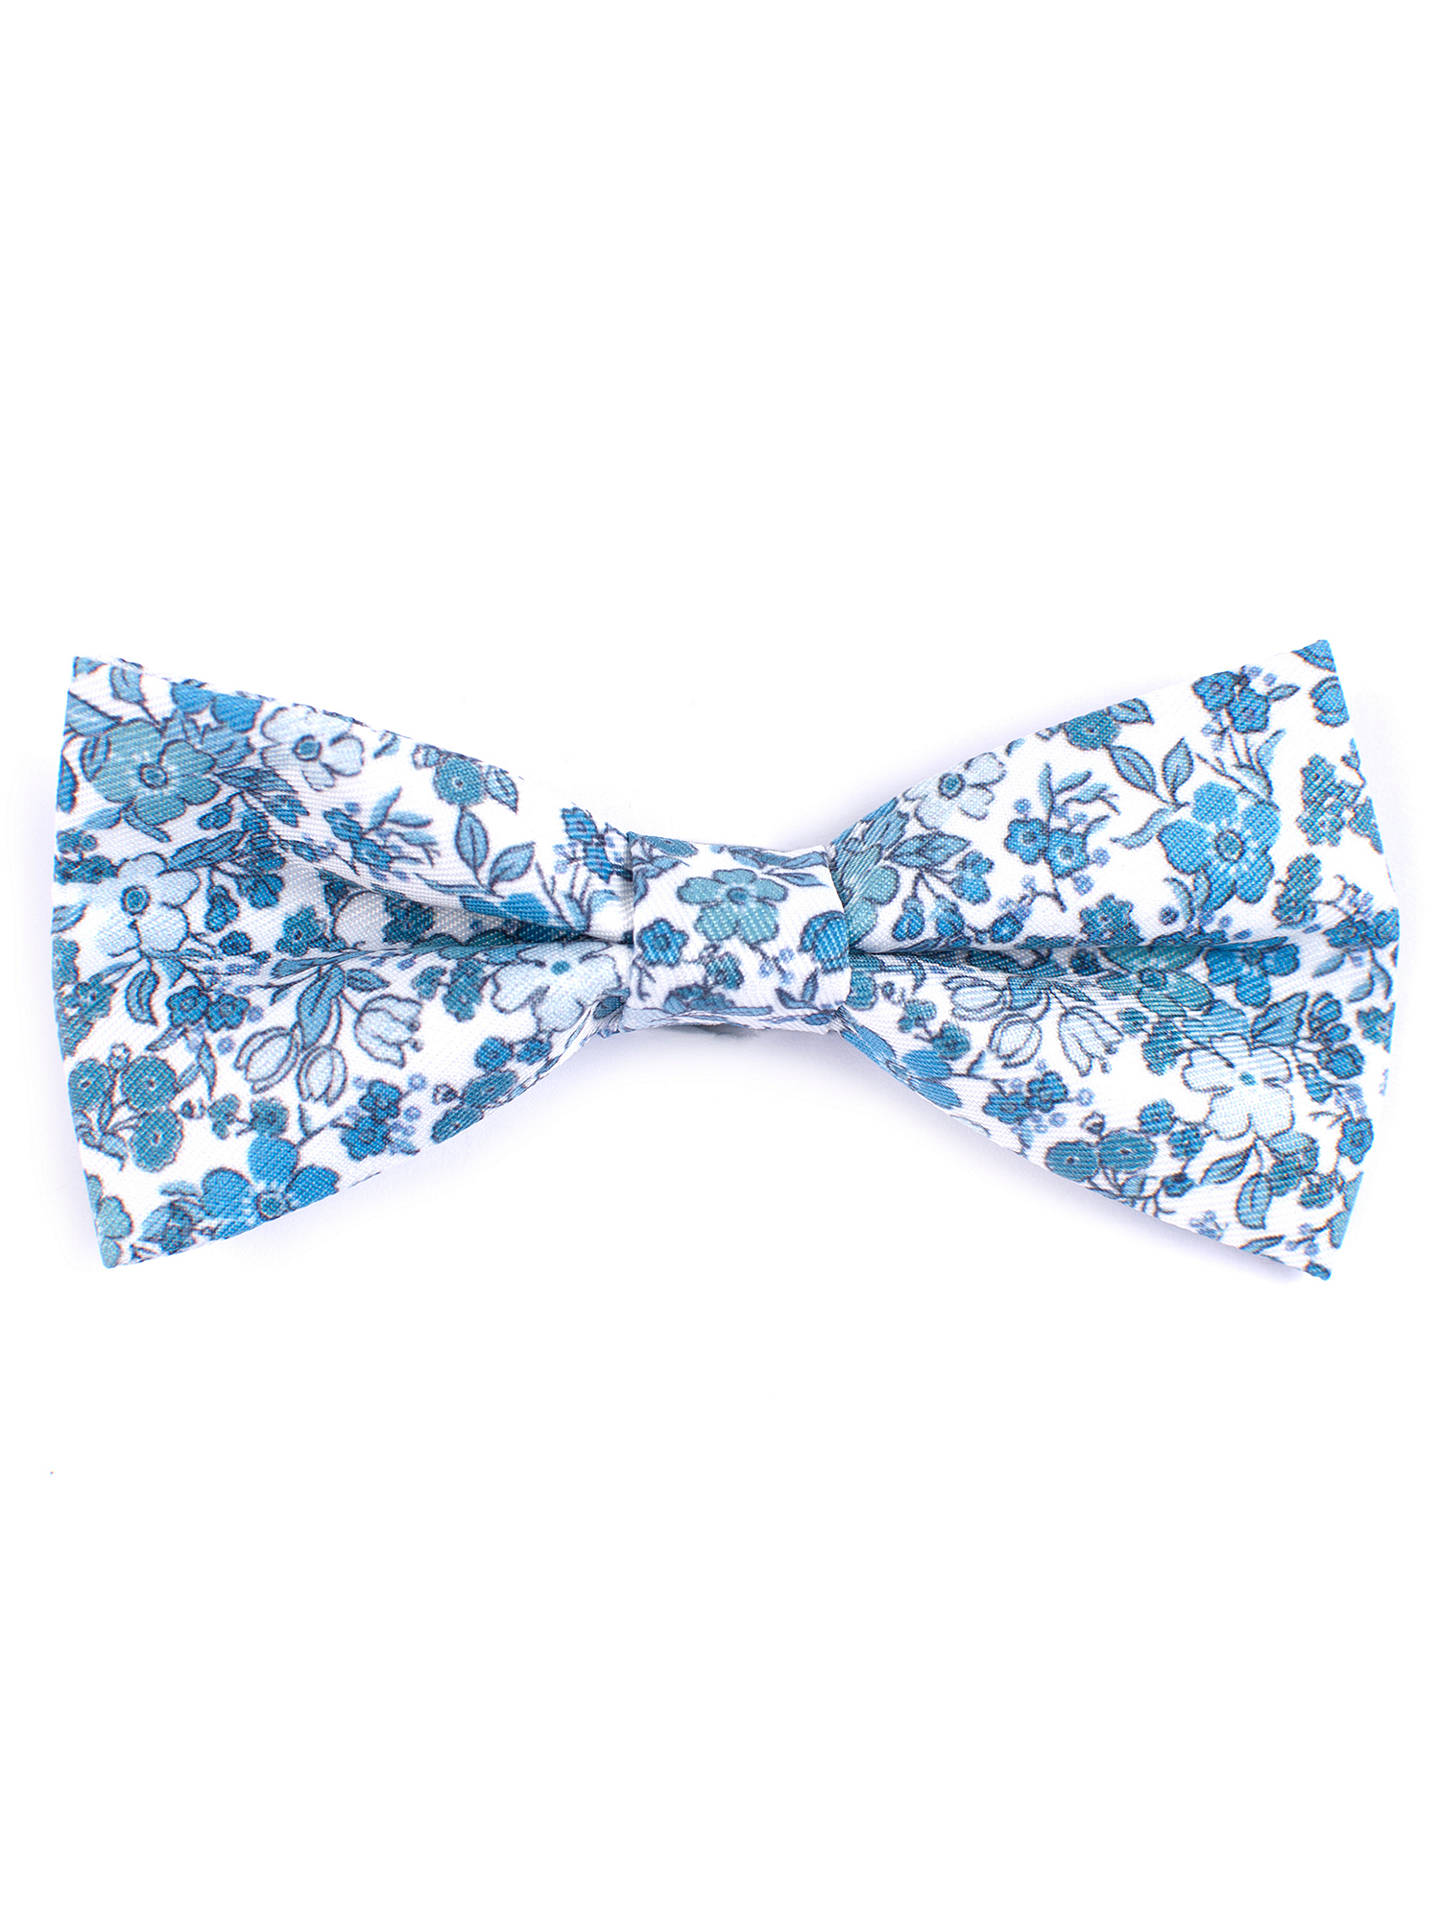 d564dbc534b84 John Lewis Heirloom Collection Boys' Floral Bow Tie, Blue/White at ...